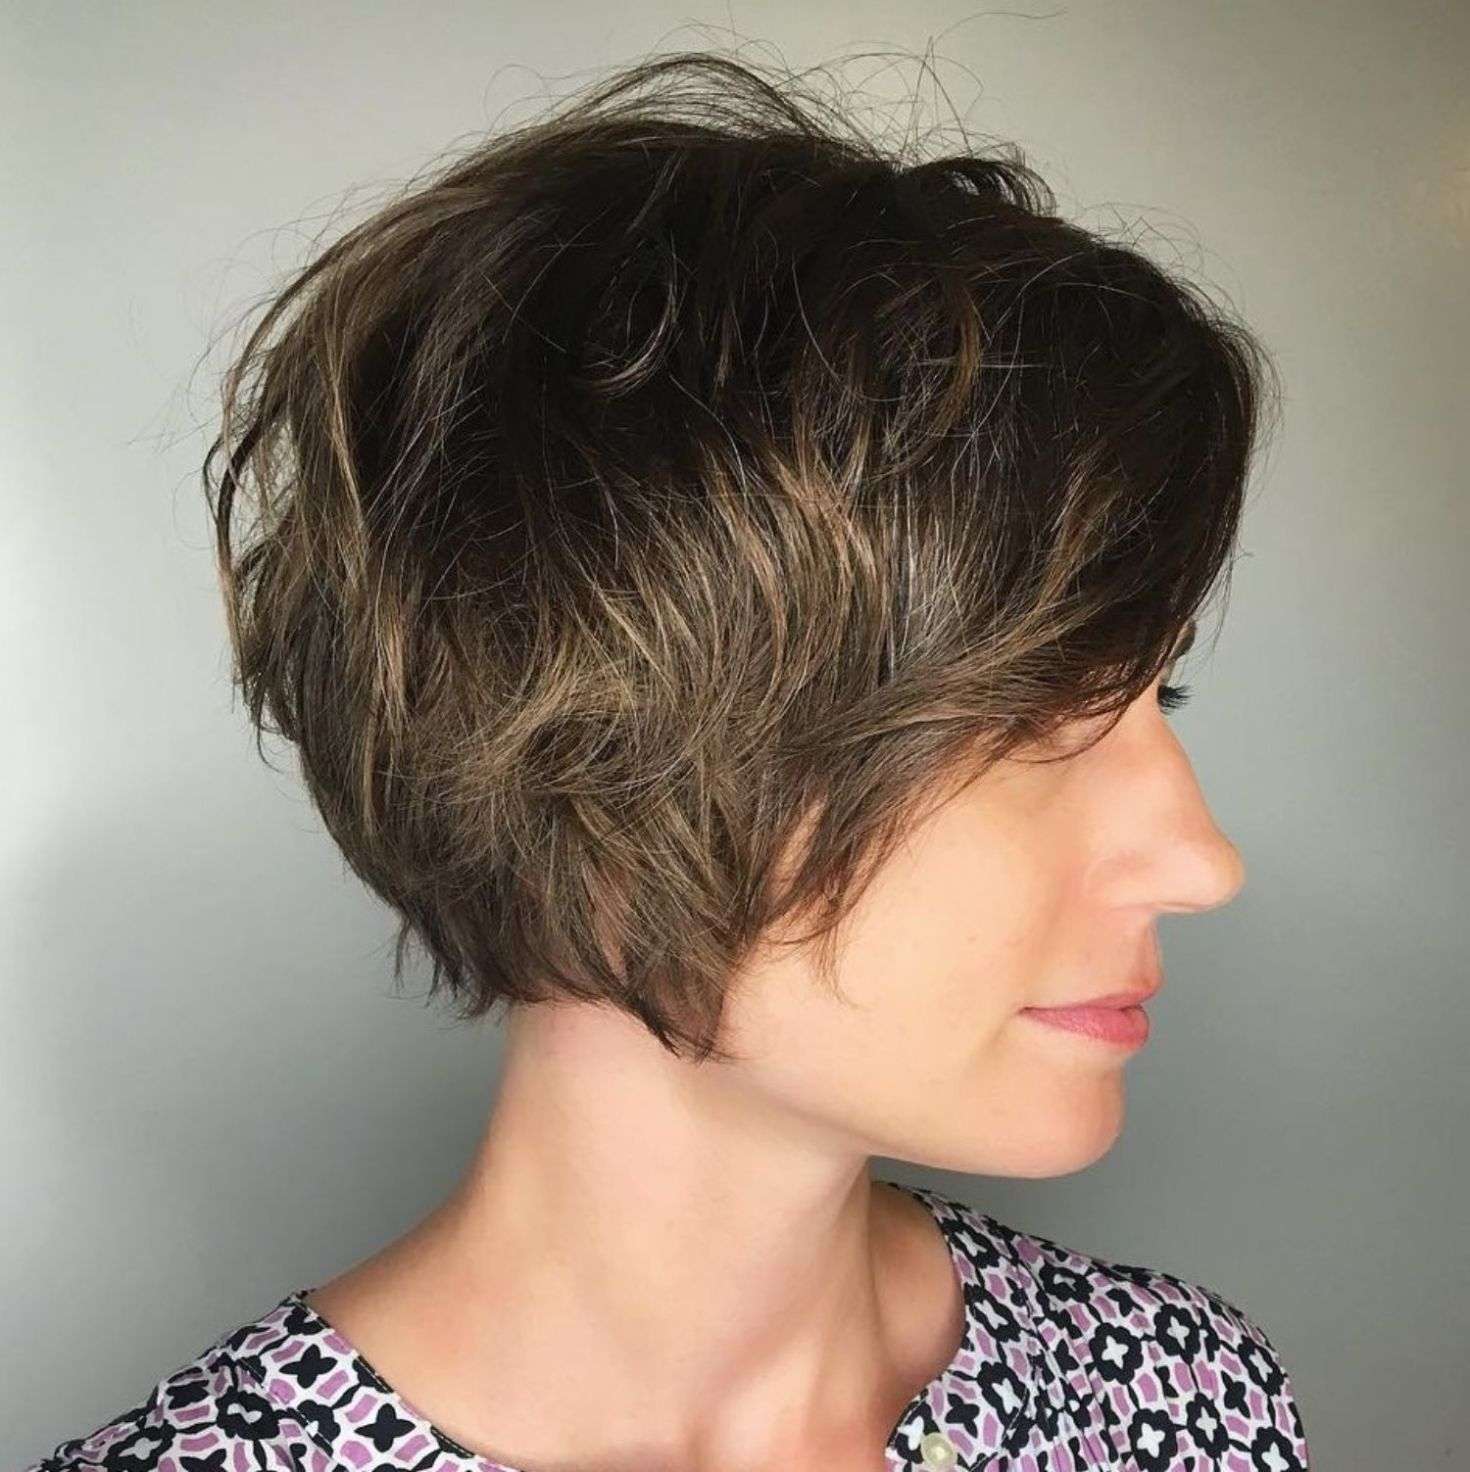 60 Classy Short Haircuts And Hairstyles For Thick Hair In 2020 Thick Hair Styles Short Messy Haircuts Short Layered Haircuts